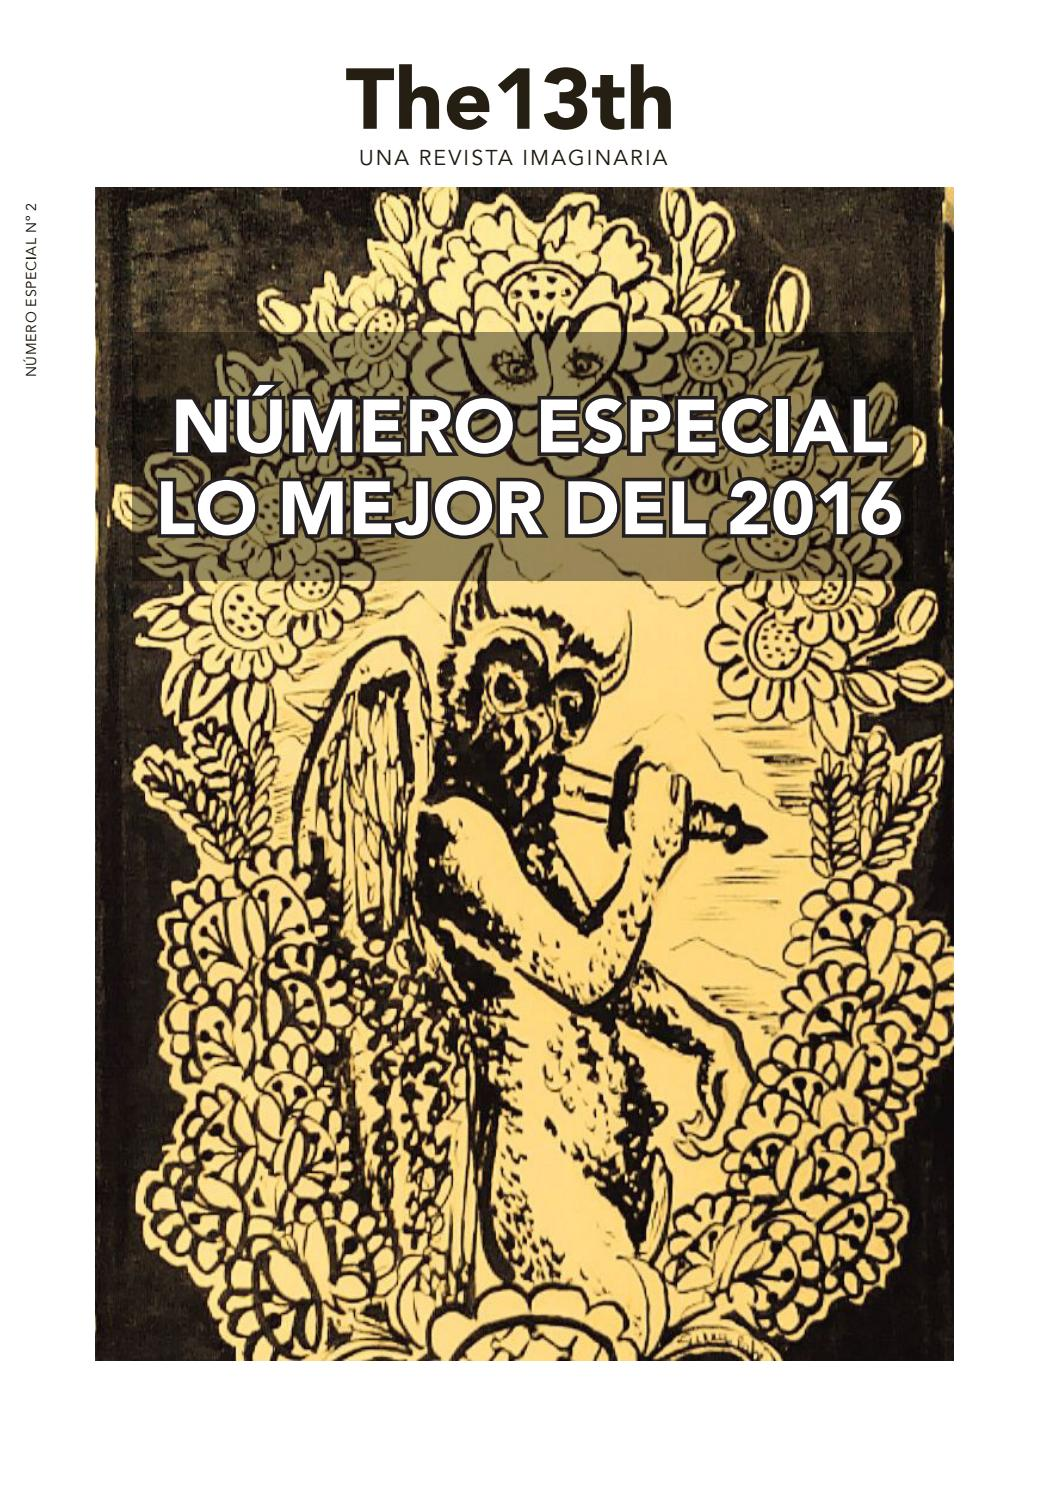 Lo Mejor del 2016 - Número Especial by Revista The 13th - issuu